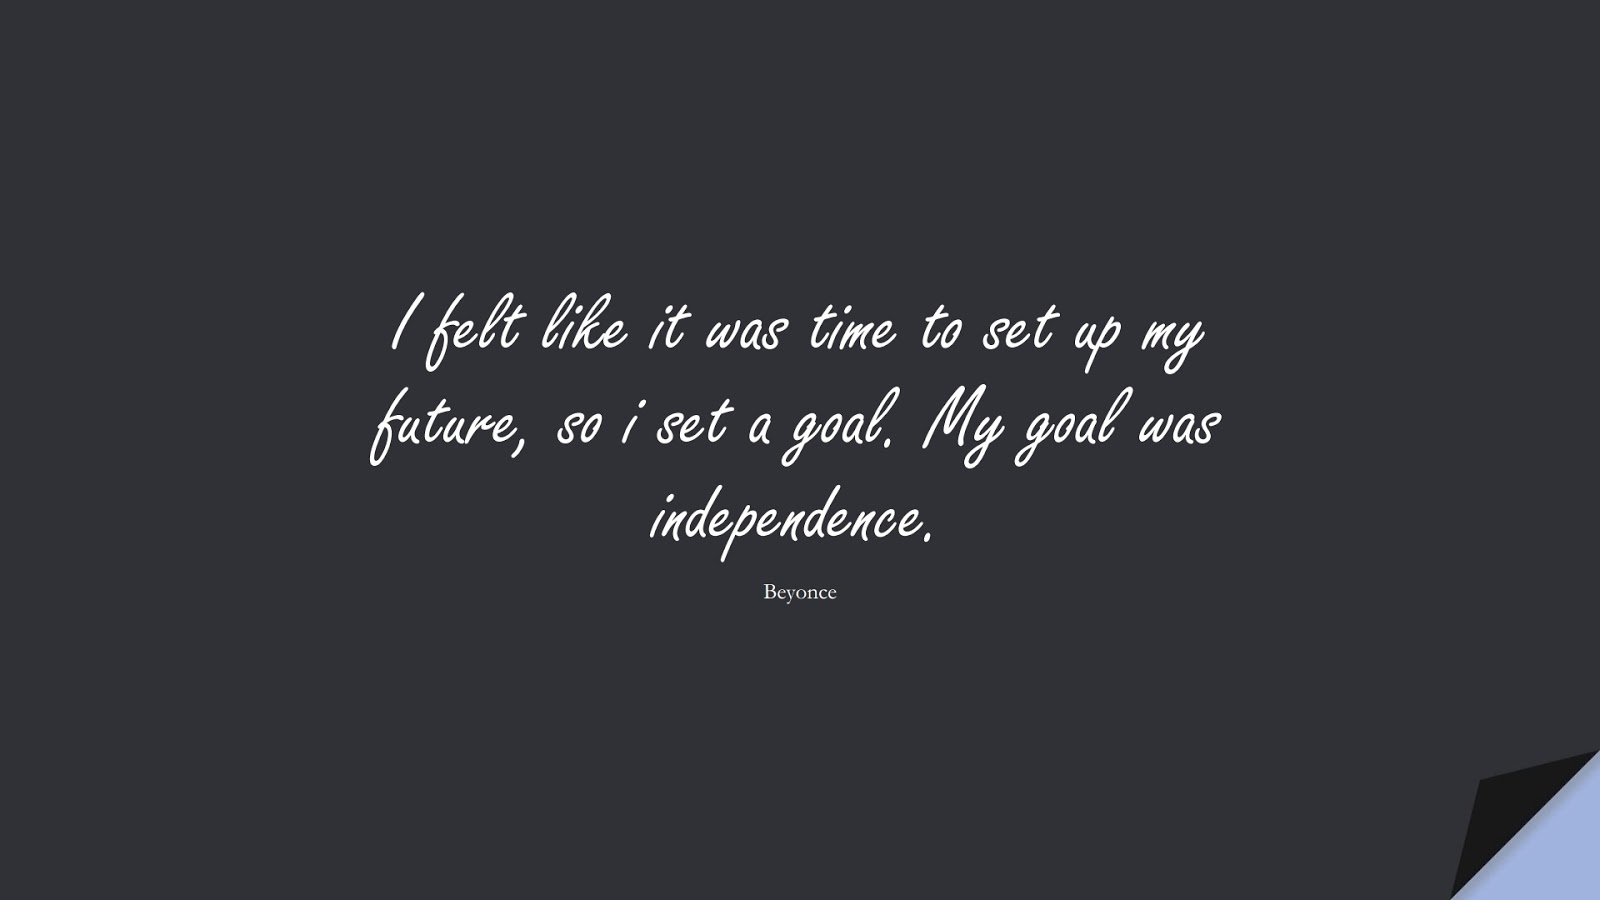 I felt like it was time to set up my future, so i set a goal. My goal was independence. (Beyonce);  #FamousQuotes